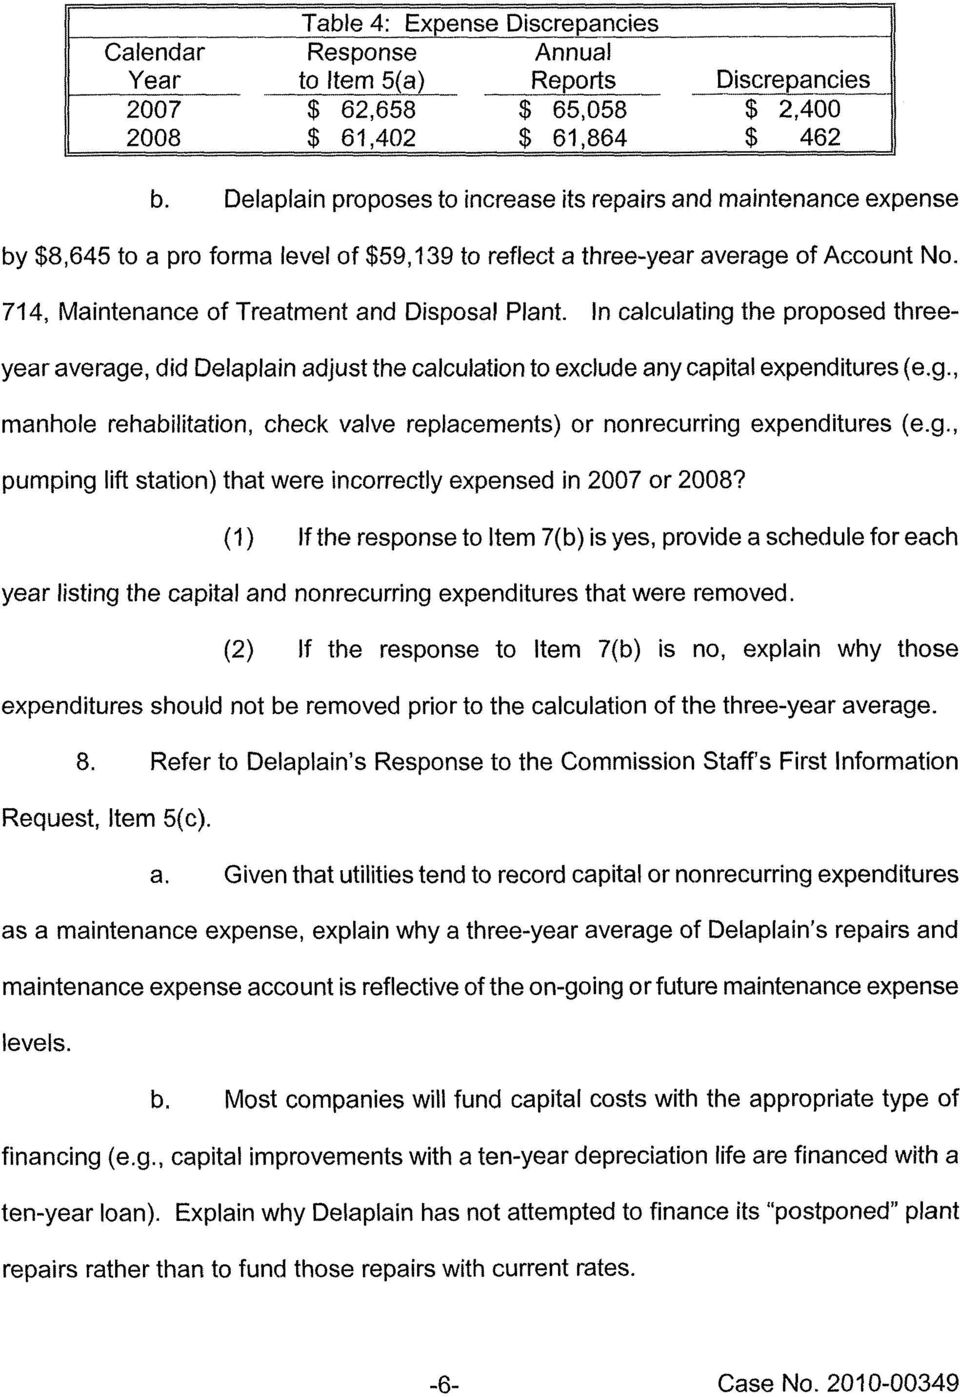 714, Maintenance of Treatment and Disposal Plant. In calculating the proposed threeyear average, did Delaplain adjust the calculation to exclude any capital expenditures (e.g., manhole rehabilitation, check valve replacements) or nonrecurring expenditures (e.